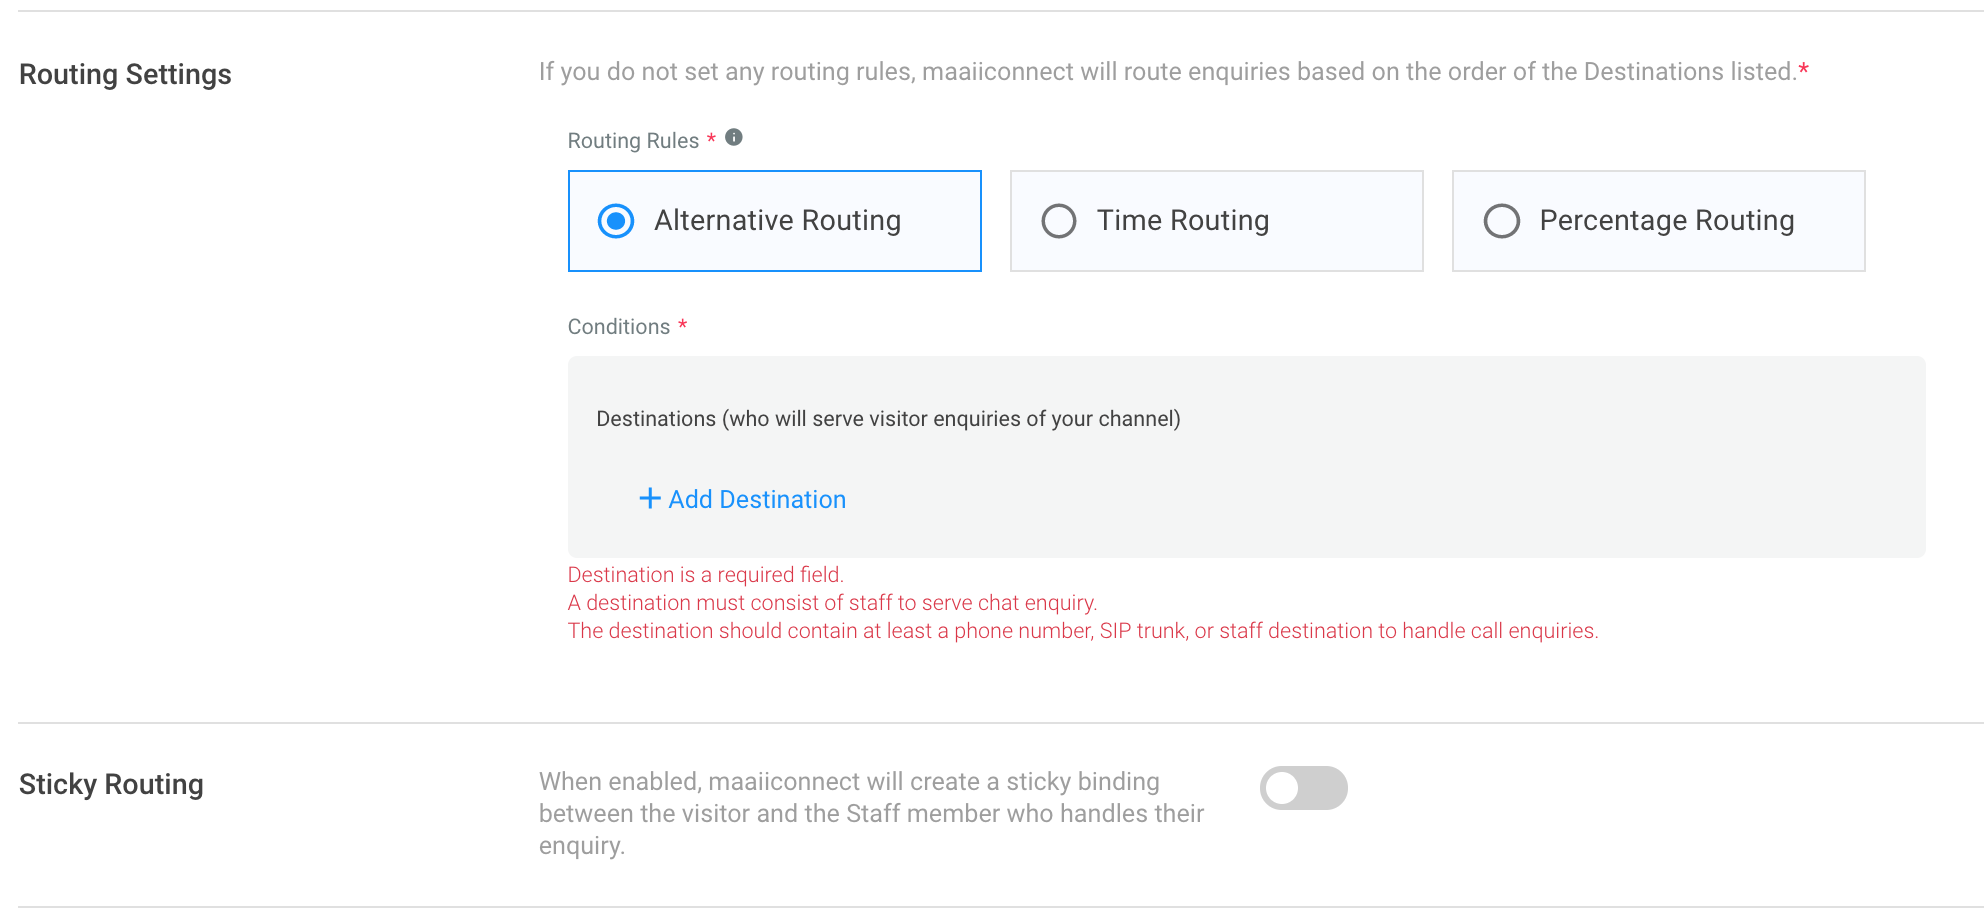 Routing Settings